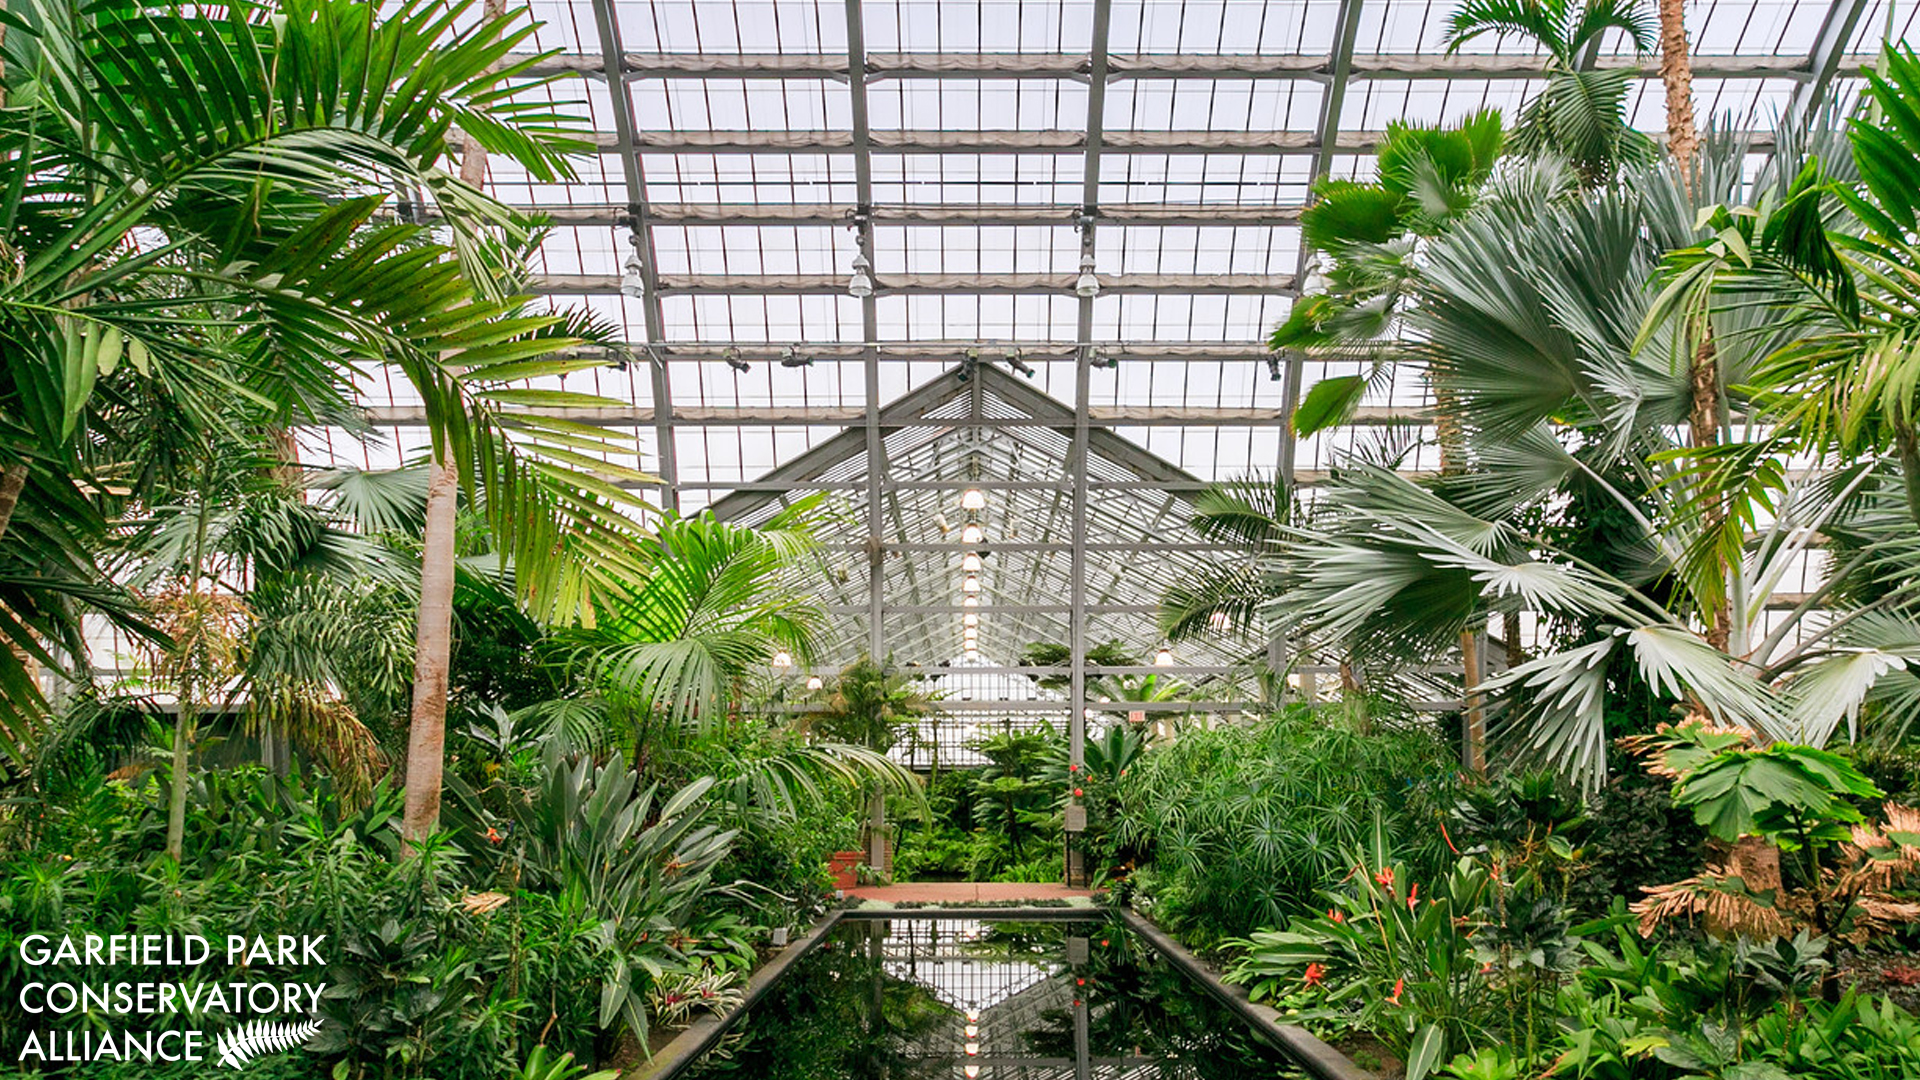 Palm House view of the reflecting pool with Fern Room in the background. Tall glass ceilings with lots of palms surrounding the center pool.